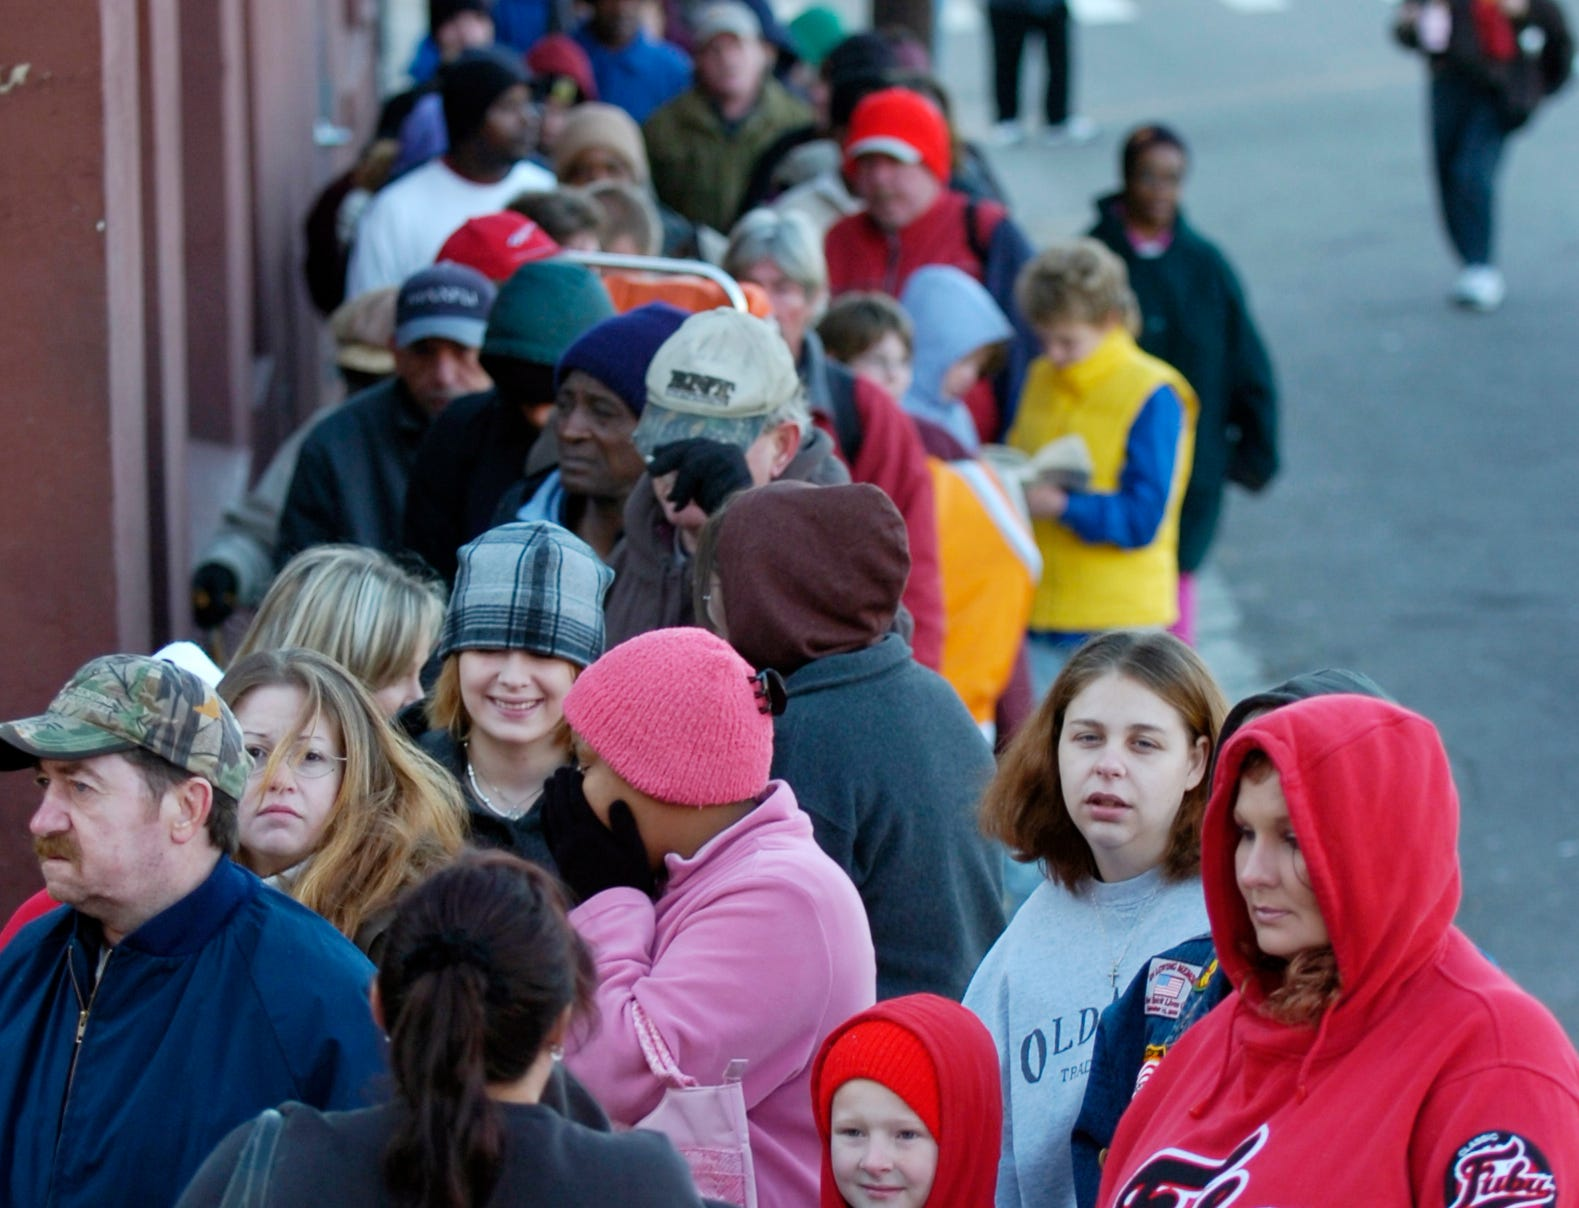 Eight year-old William Fillicetti, center, a third grade student at West View Elementary School, waits in line for a new coat during the 21st annual Coats for the Cold distribution on Saturday at the Knox Area Rescue Ministries. William and his mother, Kim, right, had to wait about an hour for a new coat before leaving for Gatlinburg to watch the Christmas parade according to Kim Fillicetti.